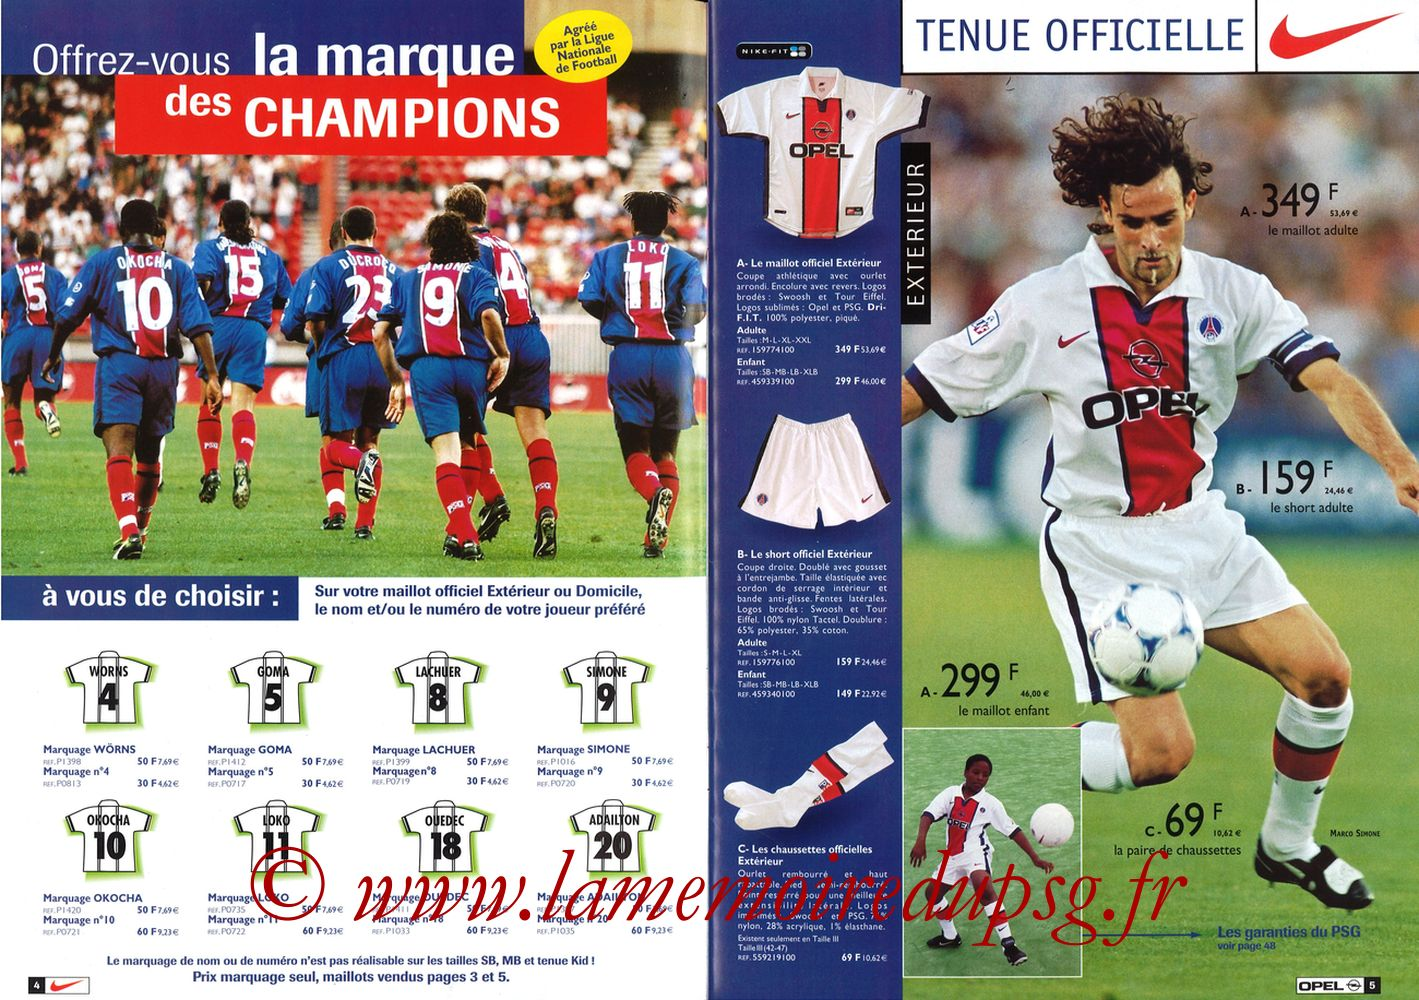 Catalogue PSG - 1998-99 - Pages 04 et 05